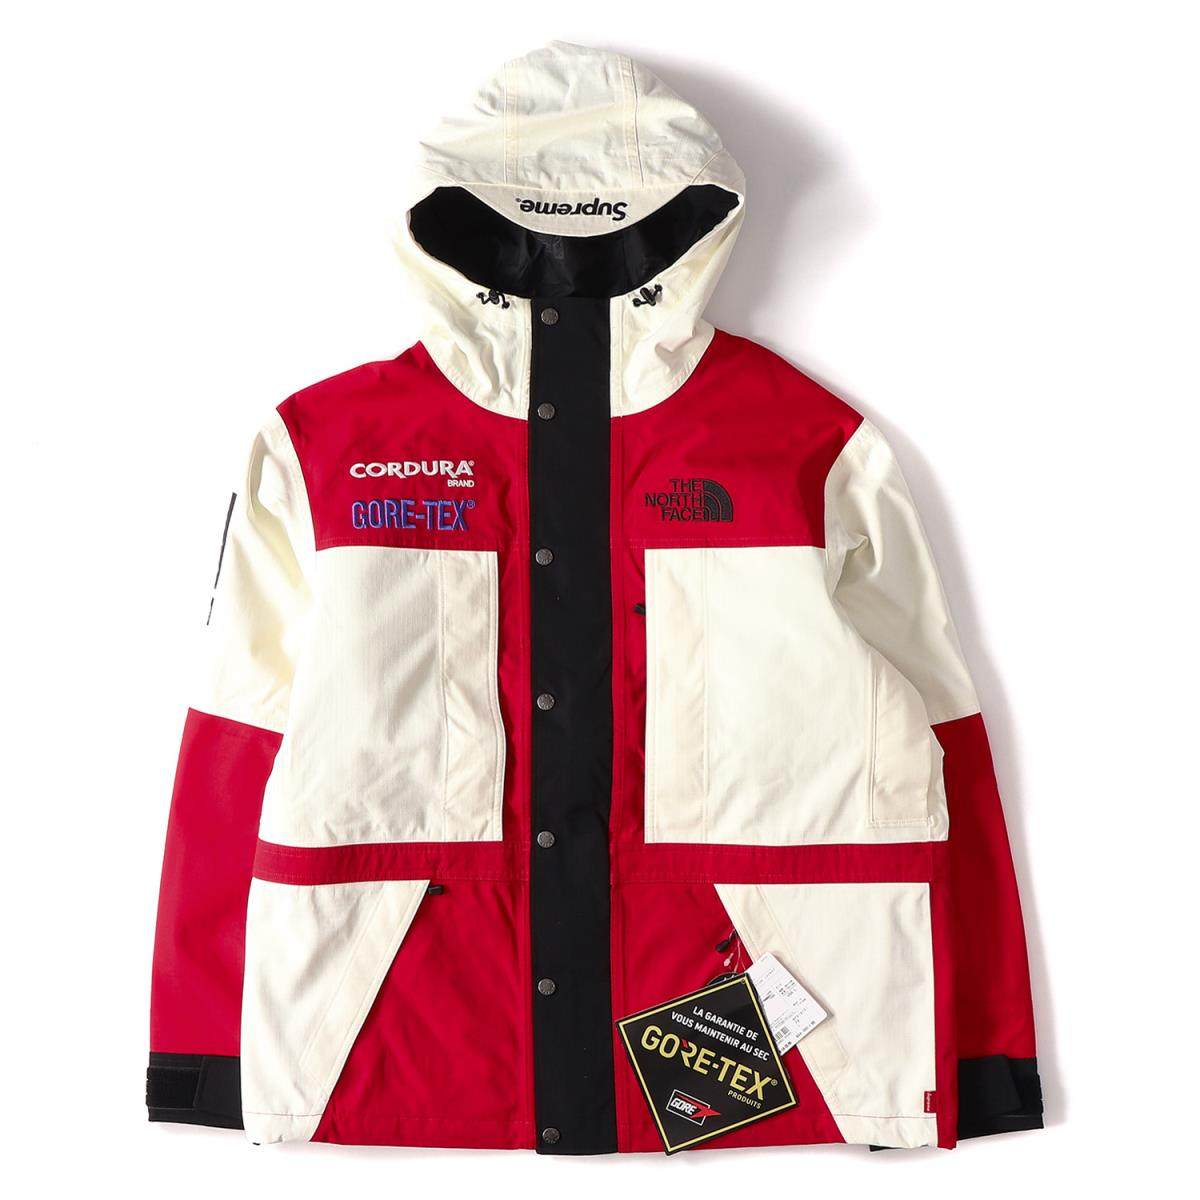 2033ac71 Papyrus L for Supreme (シュプリーム) North Face jacket THE NORTH FACE GORE-TEX ...